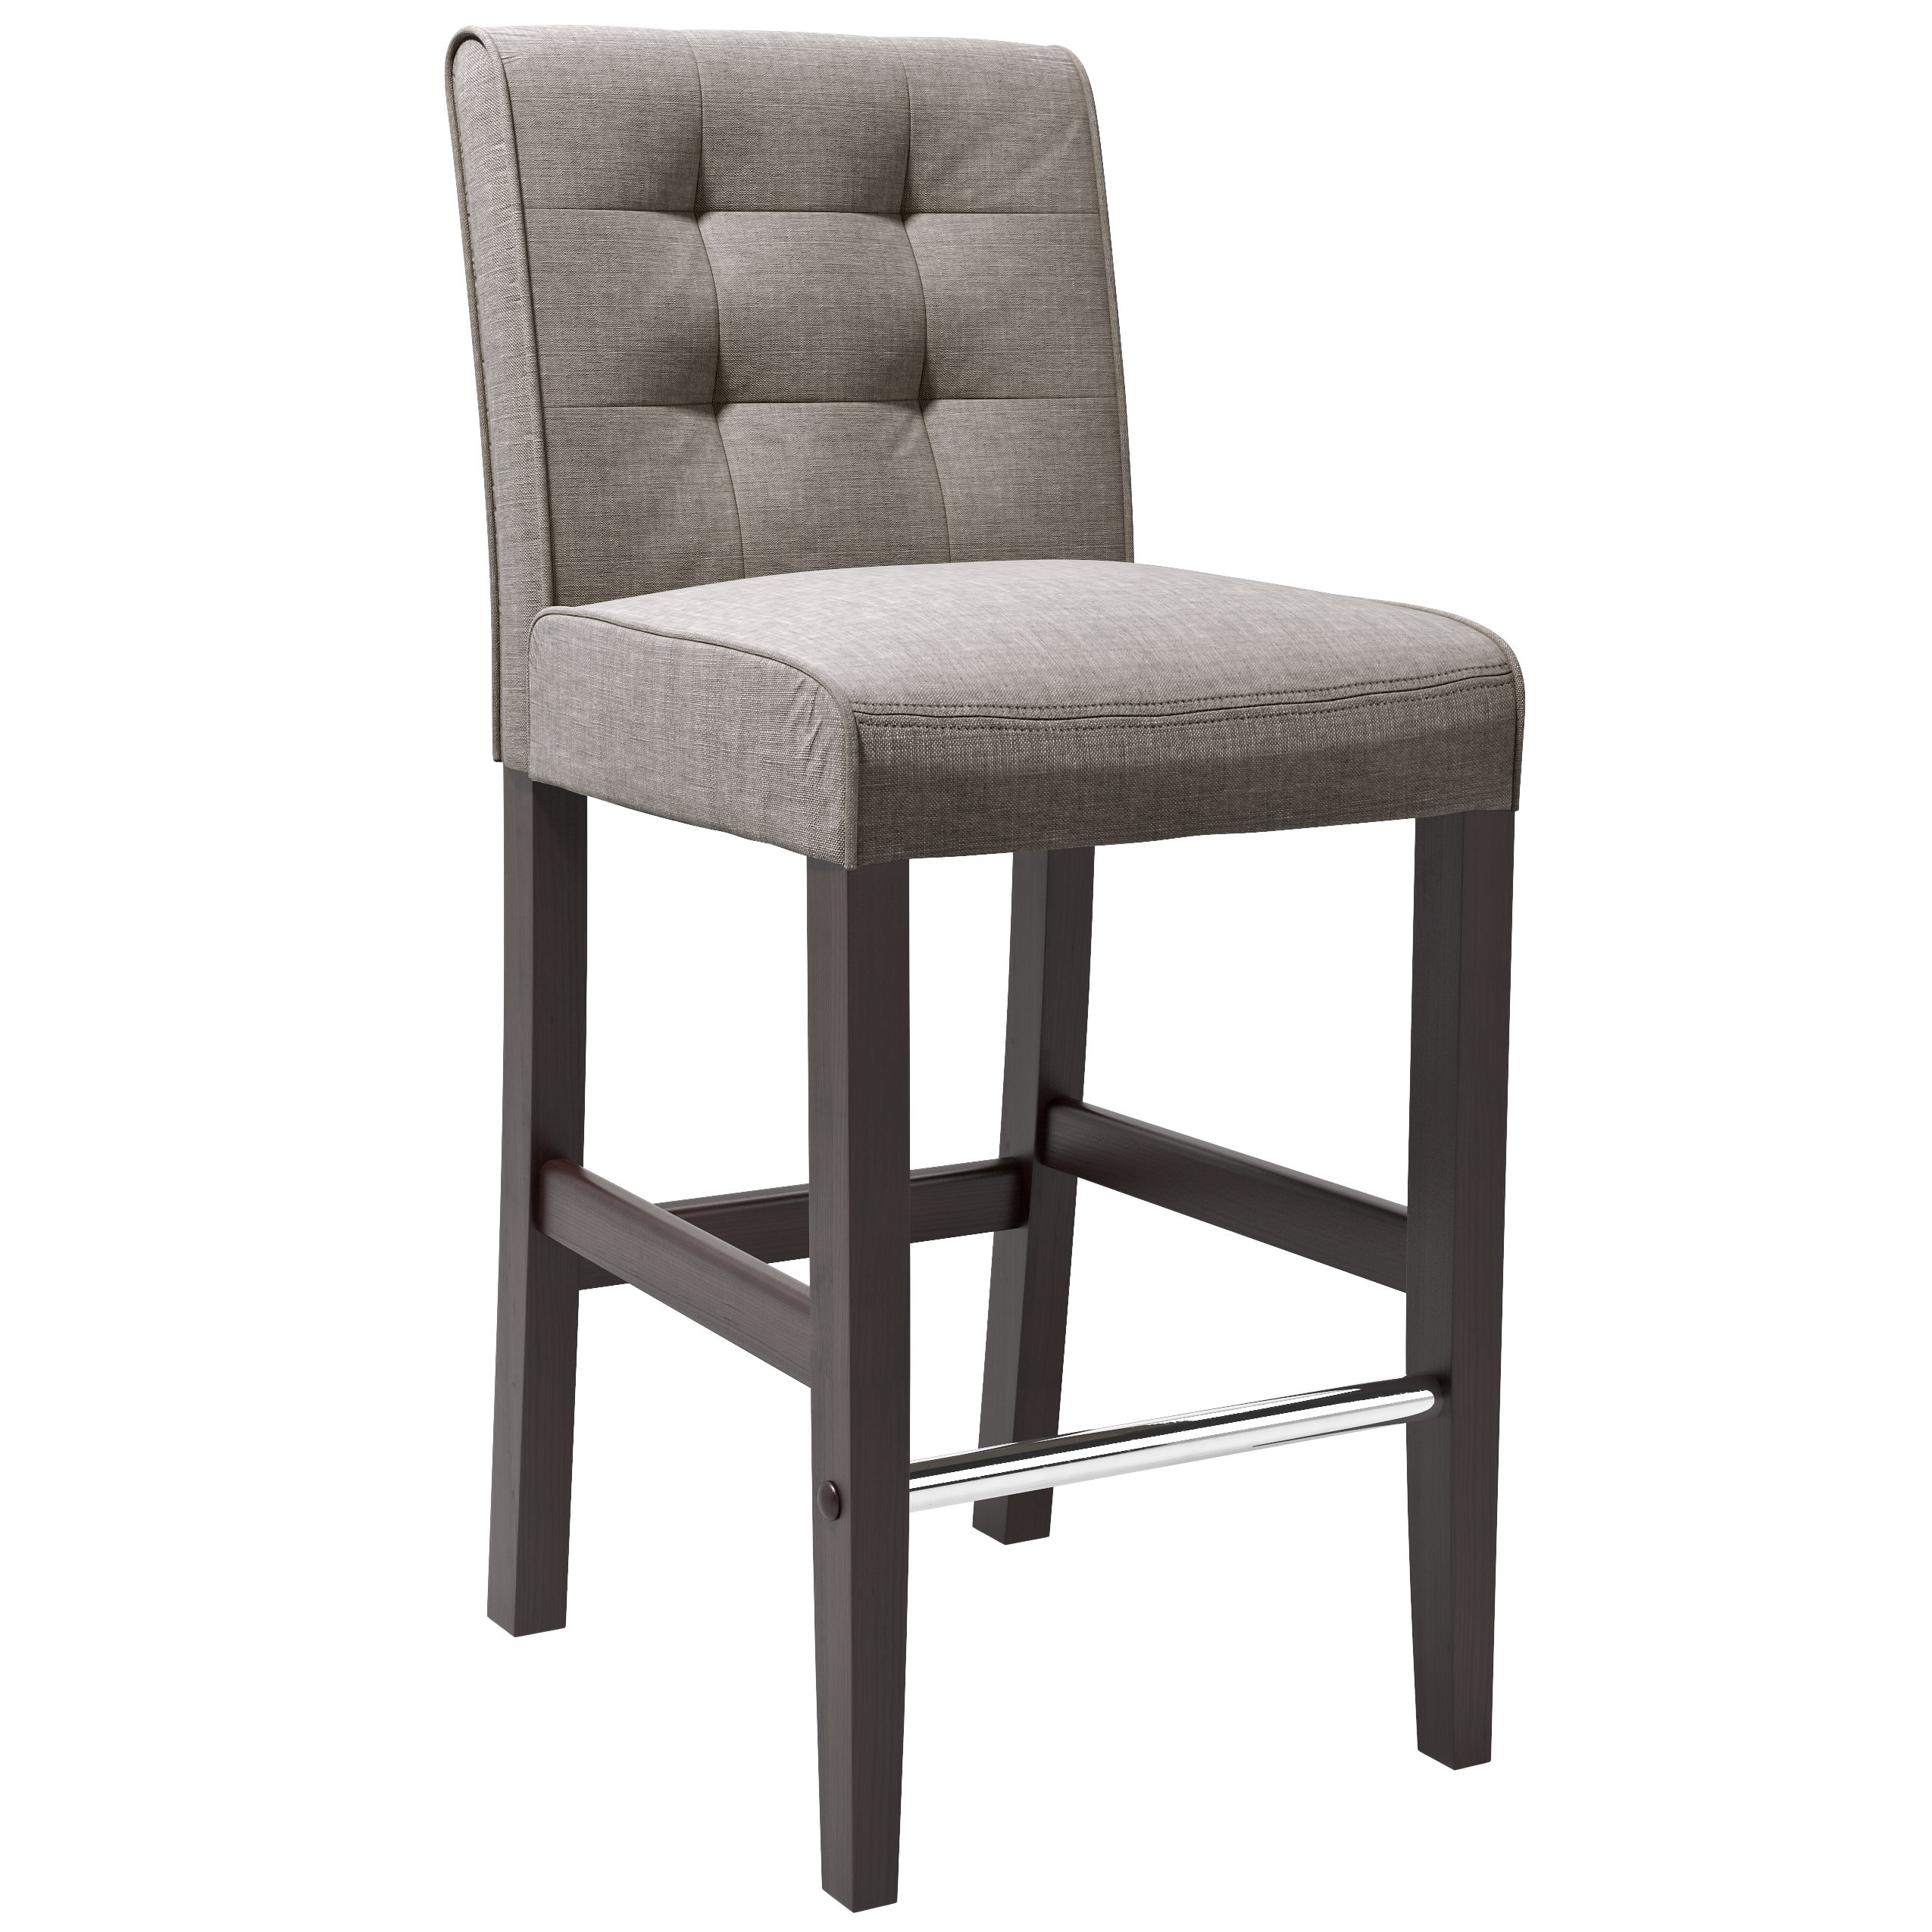 Shop corliving antonio bar height barstool in grey tweed fabric free shipping today overstock com 10813065